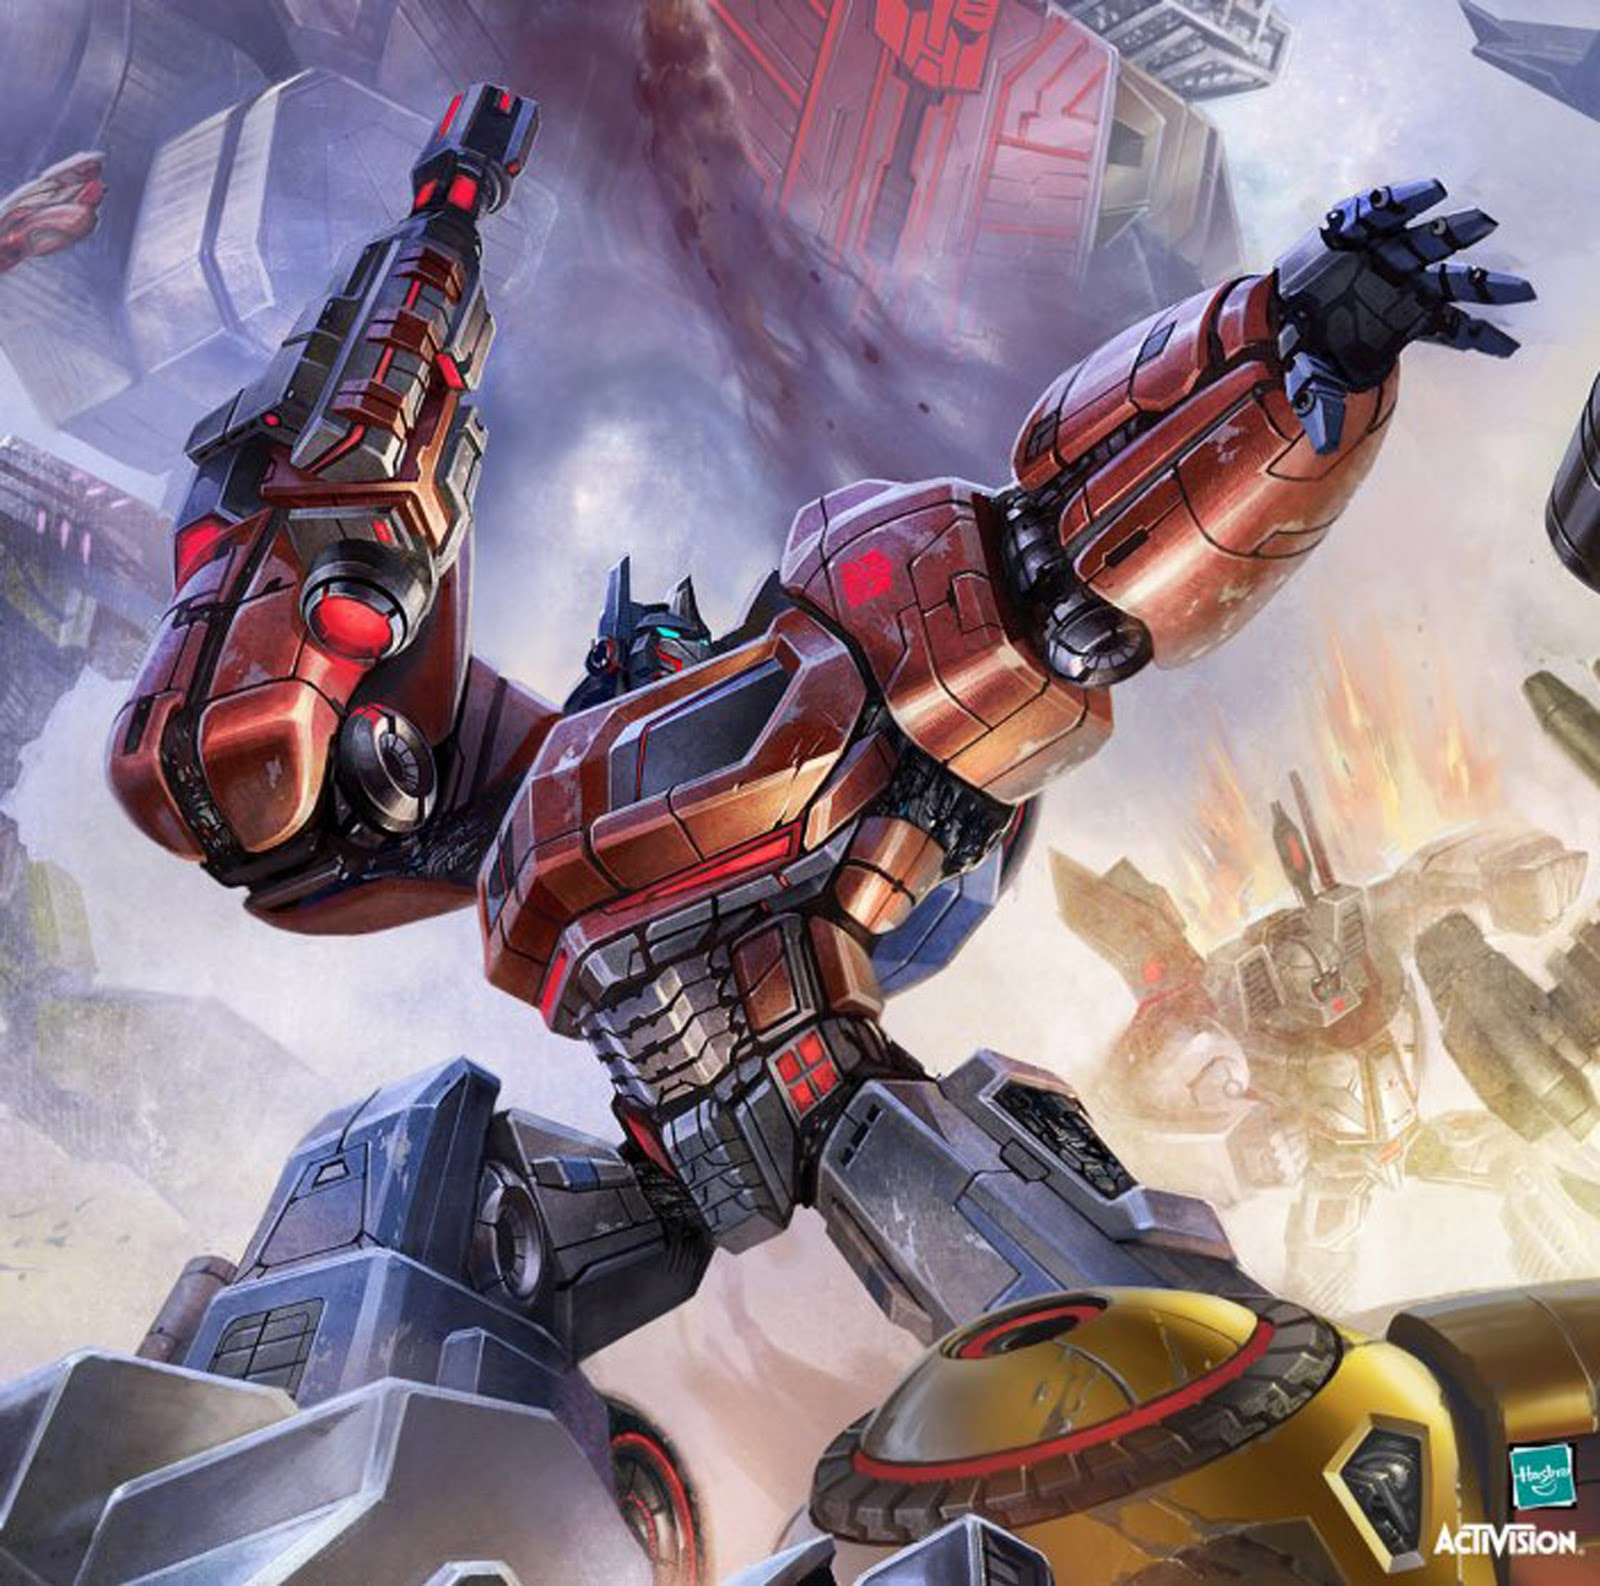 image - optimus prime fall of cybertron video game aaron limonick